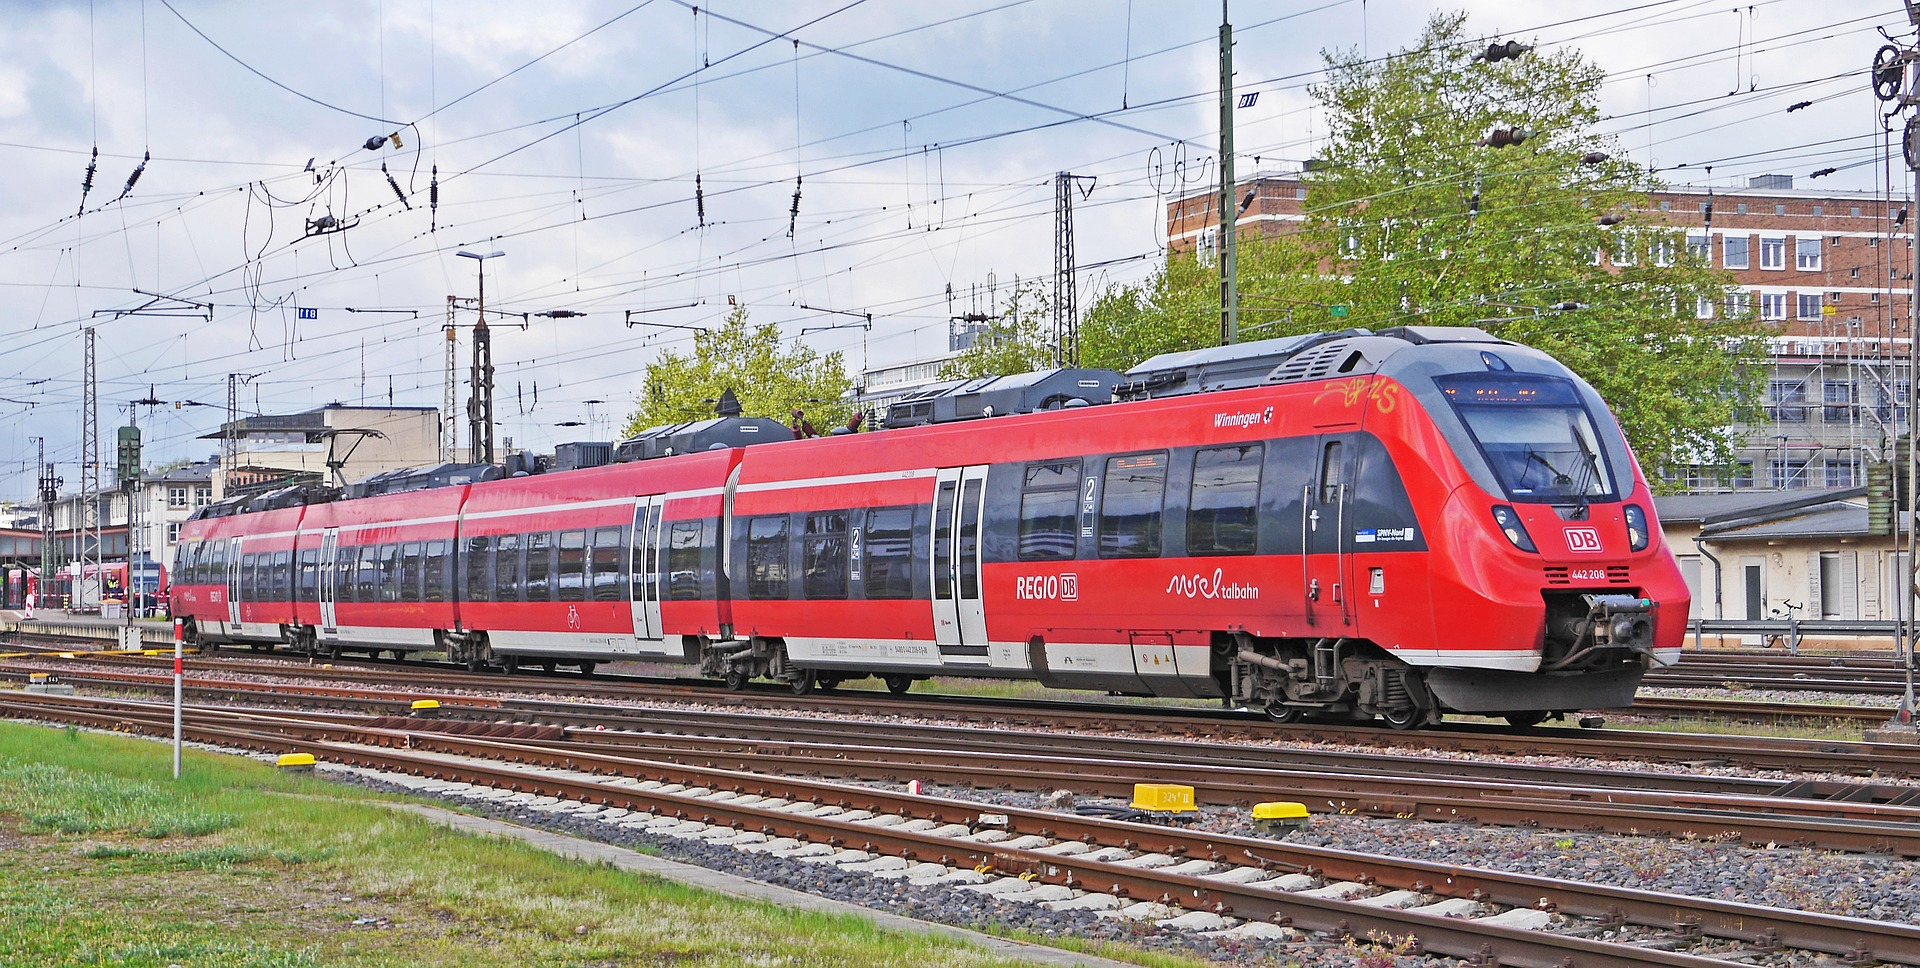 sbahn_metrolpolregion_talent2_nürnberg_fürth_erlangen